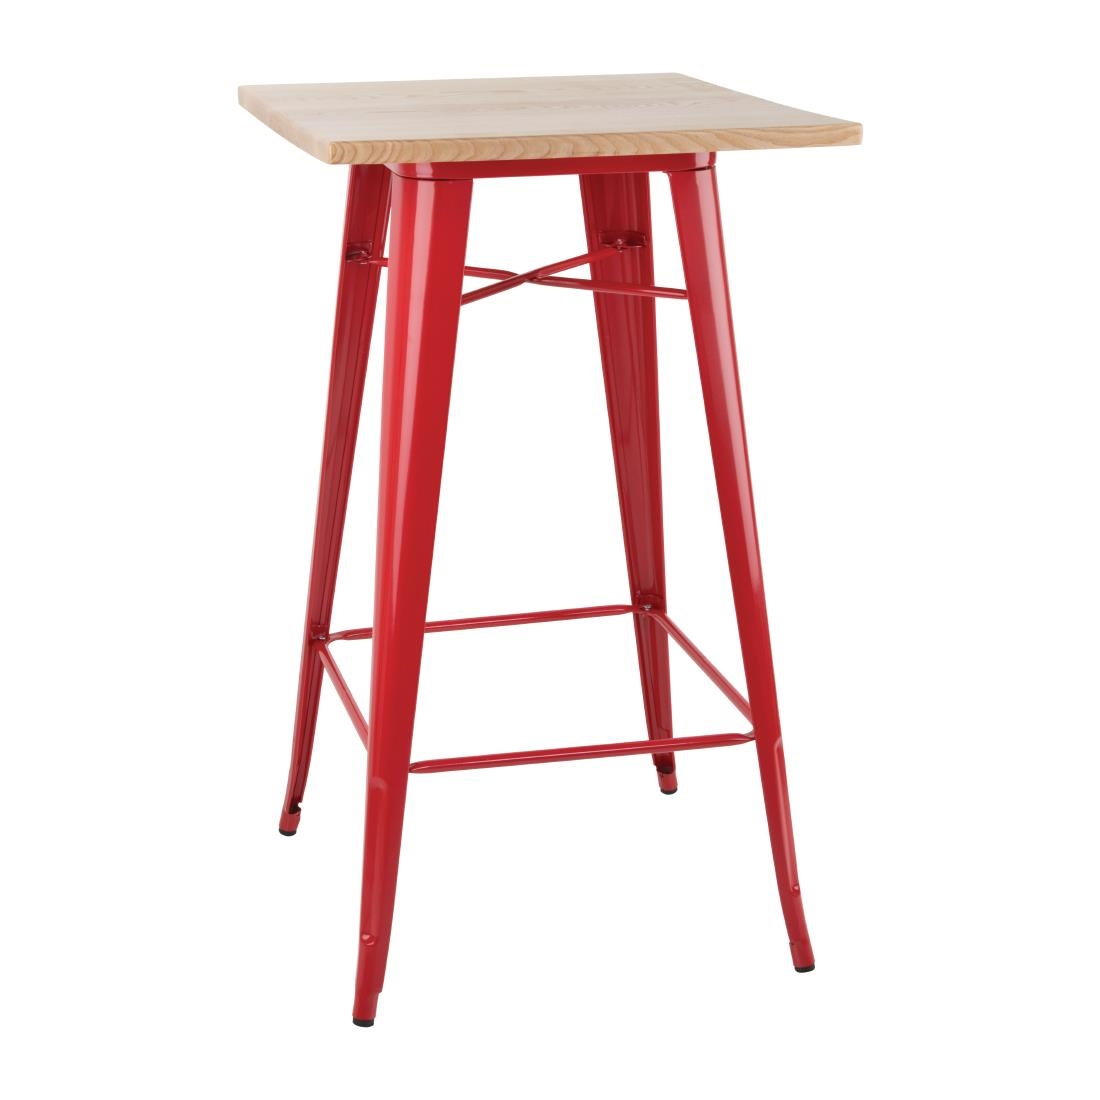 Image of Bolero Bistro Bar Table with Wooden Top Red (Single)